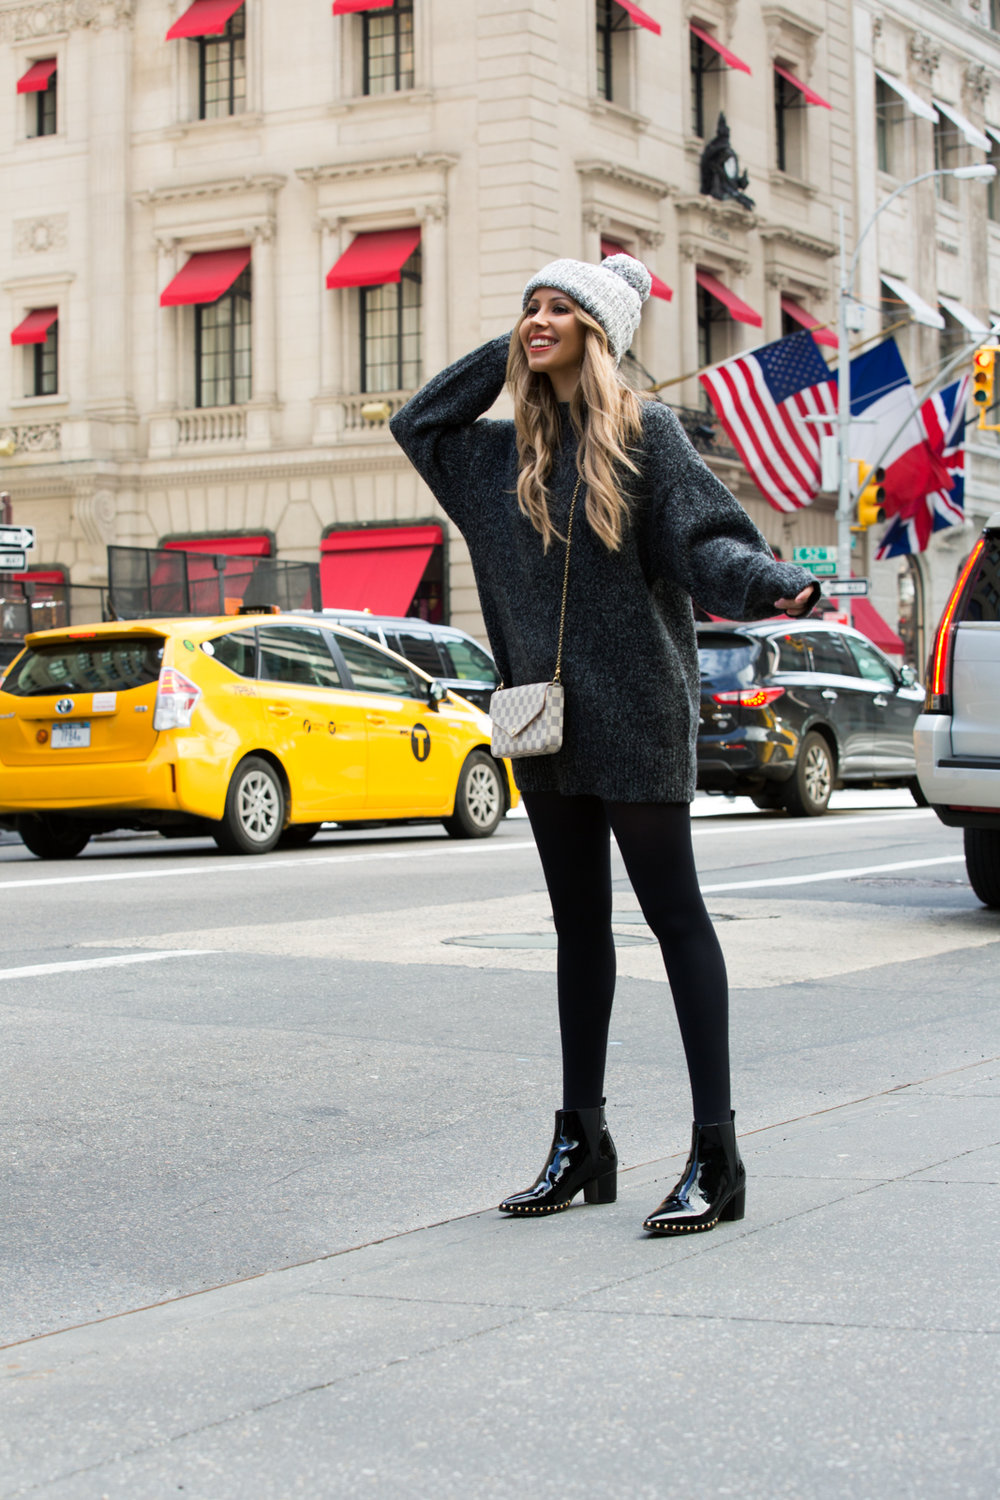 Friend in Fashion, Street Style, New York